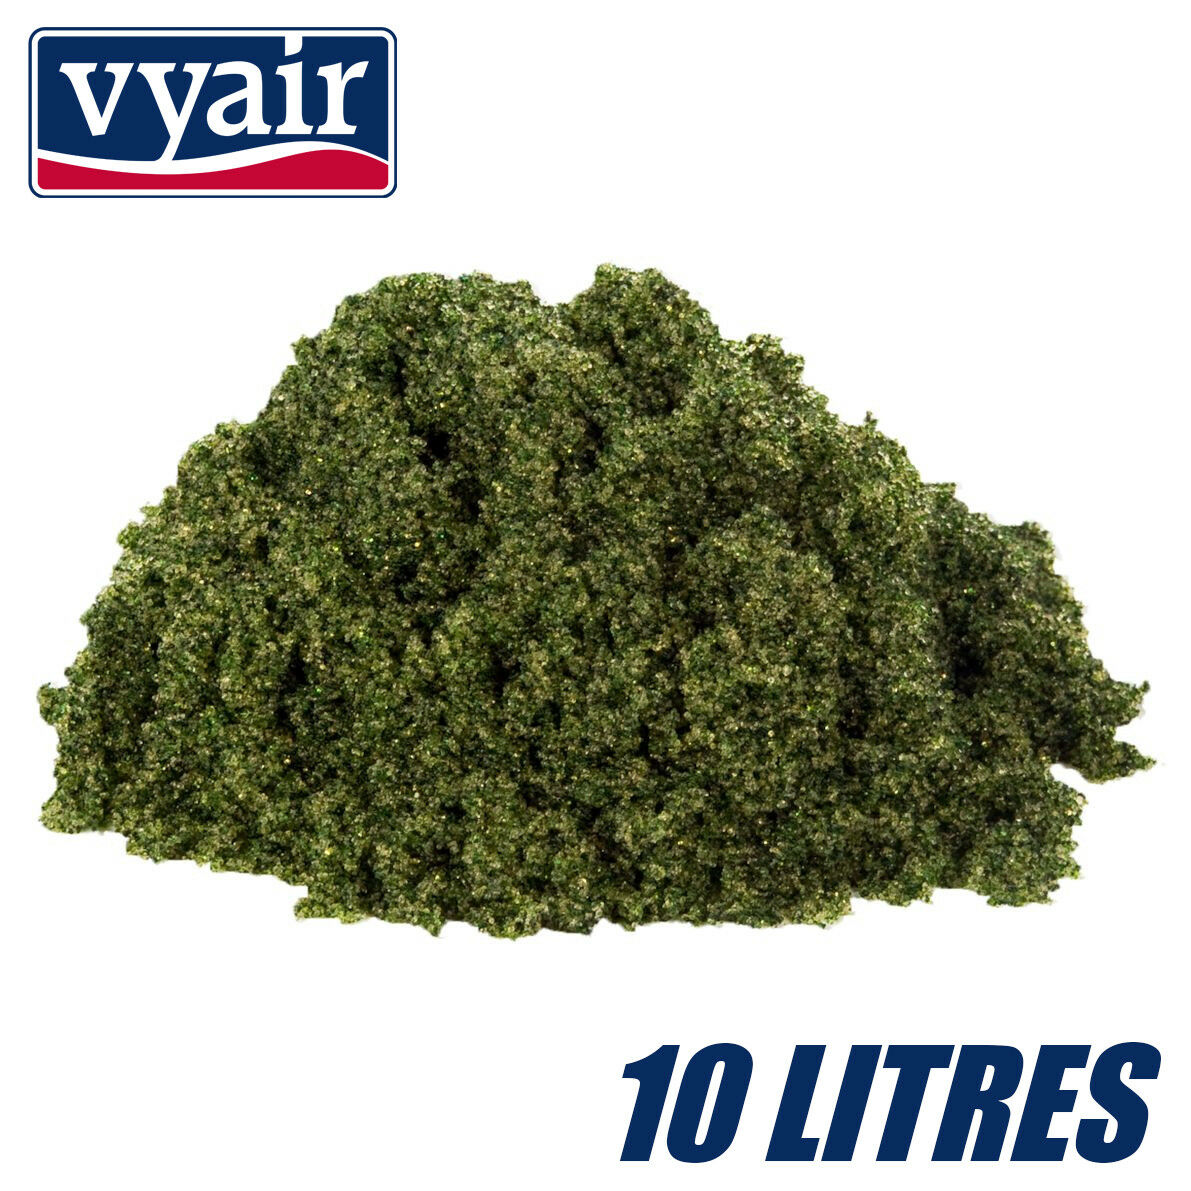 VYAIR 10 Litres Mixed Bed Colour Change Resin Resin Resin for Reverse Osmosis & Deionization 10b74a